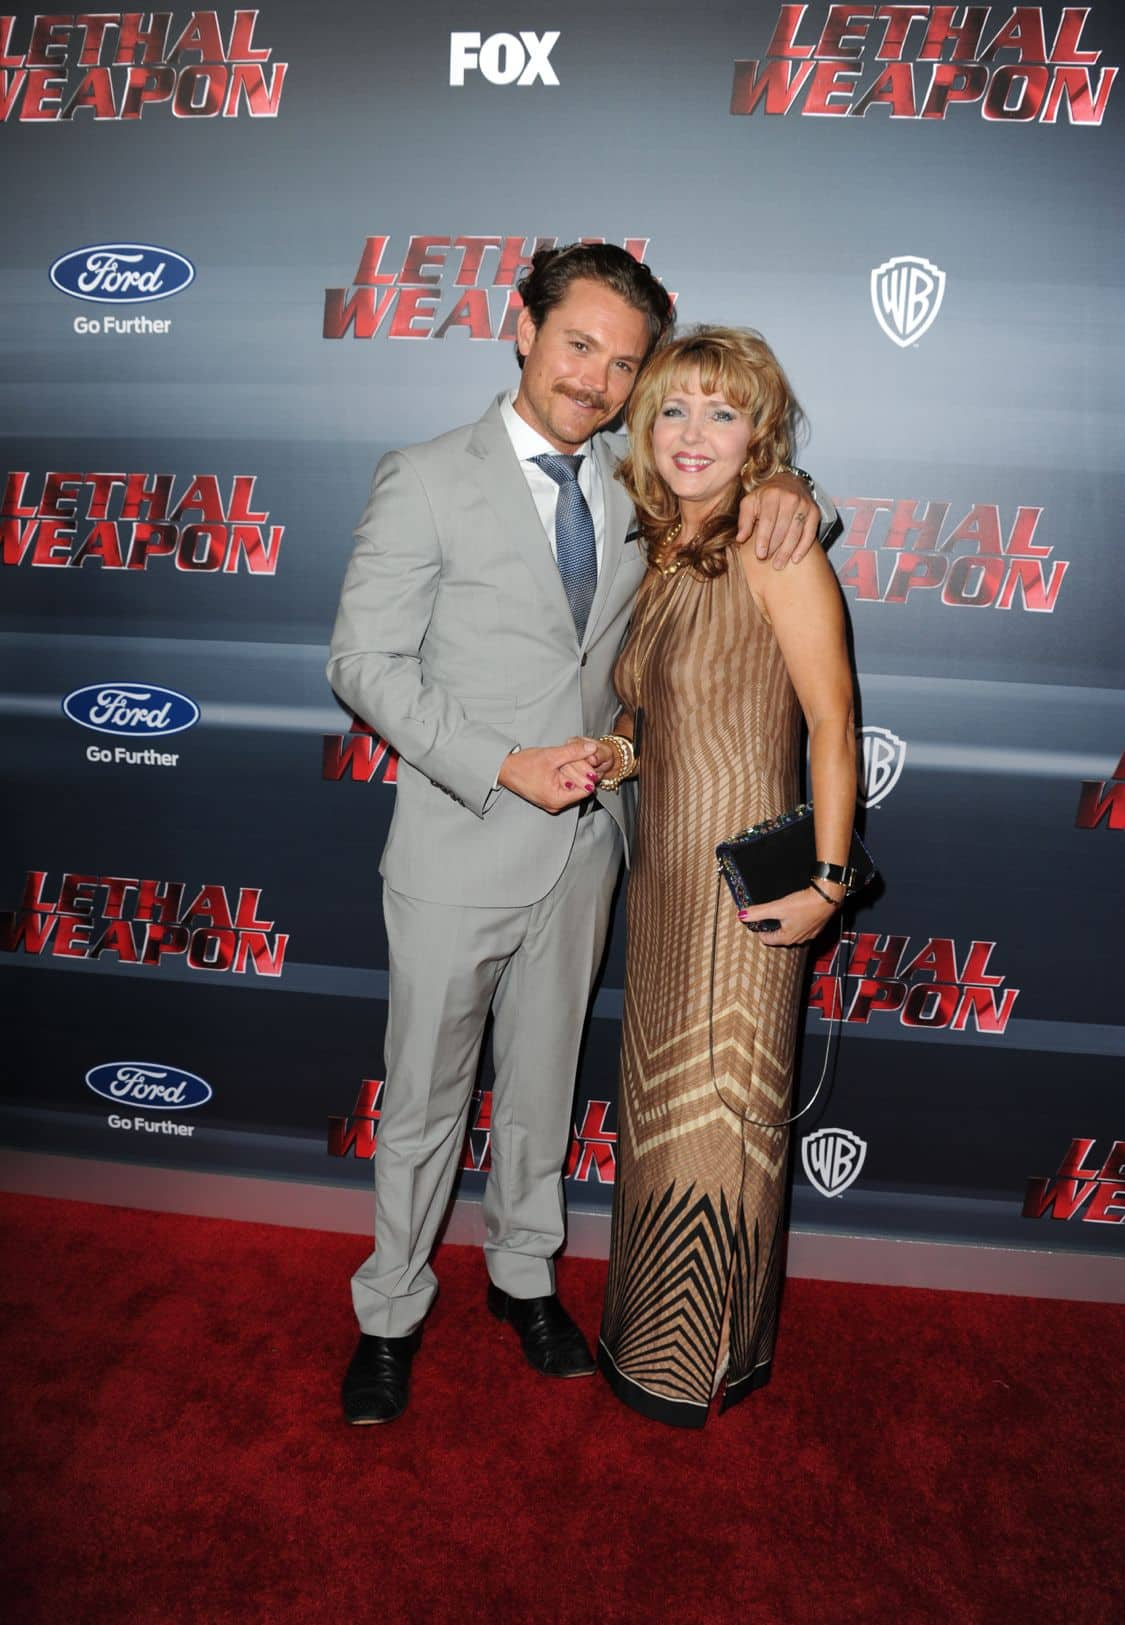 LETHAL WEAPON: Pictured L-R: Clayne Crawford and mother Lennie Crawford celebrate the LETHAL WEAPON premiere party at NeueHouse Hollywood on Monday, Sept. 12, in Los Angeles, CA, sponsored by Ford. LETHAL WEAPON premieres Wednesday, Sept. 21 (8:00-9:00 PM ET/PT) on FOX. ©2016 Fox Broadcasting Co. CR: Frank Micelotta/FOX